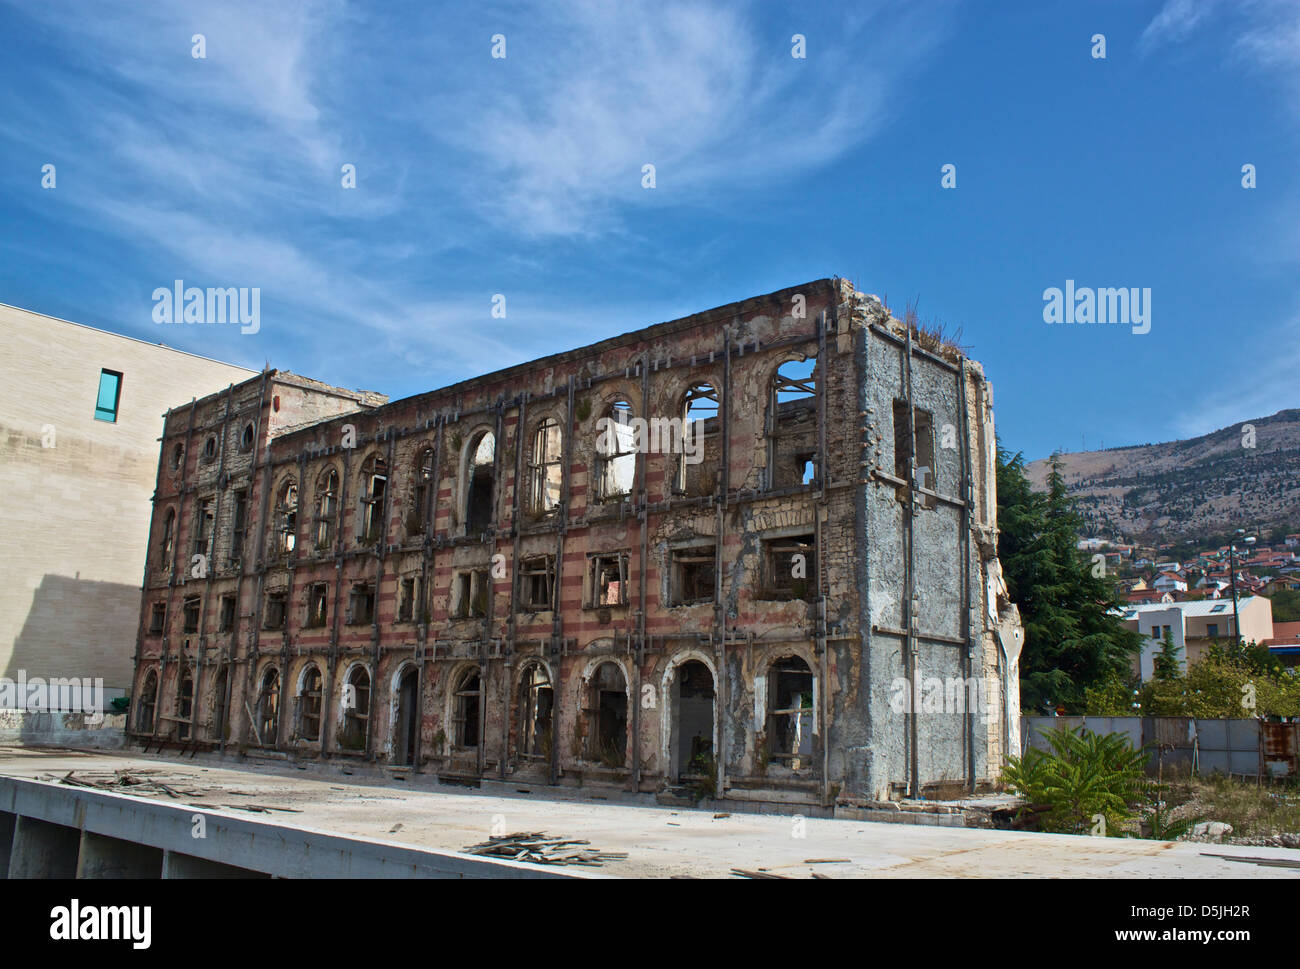 Derelict, abandoned building showing the scars of war in Mostar, Bosnia Stock Photo